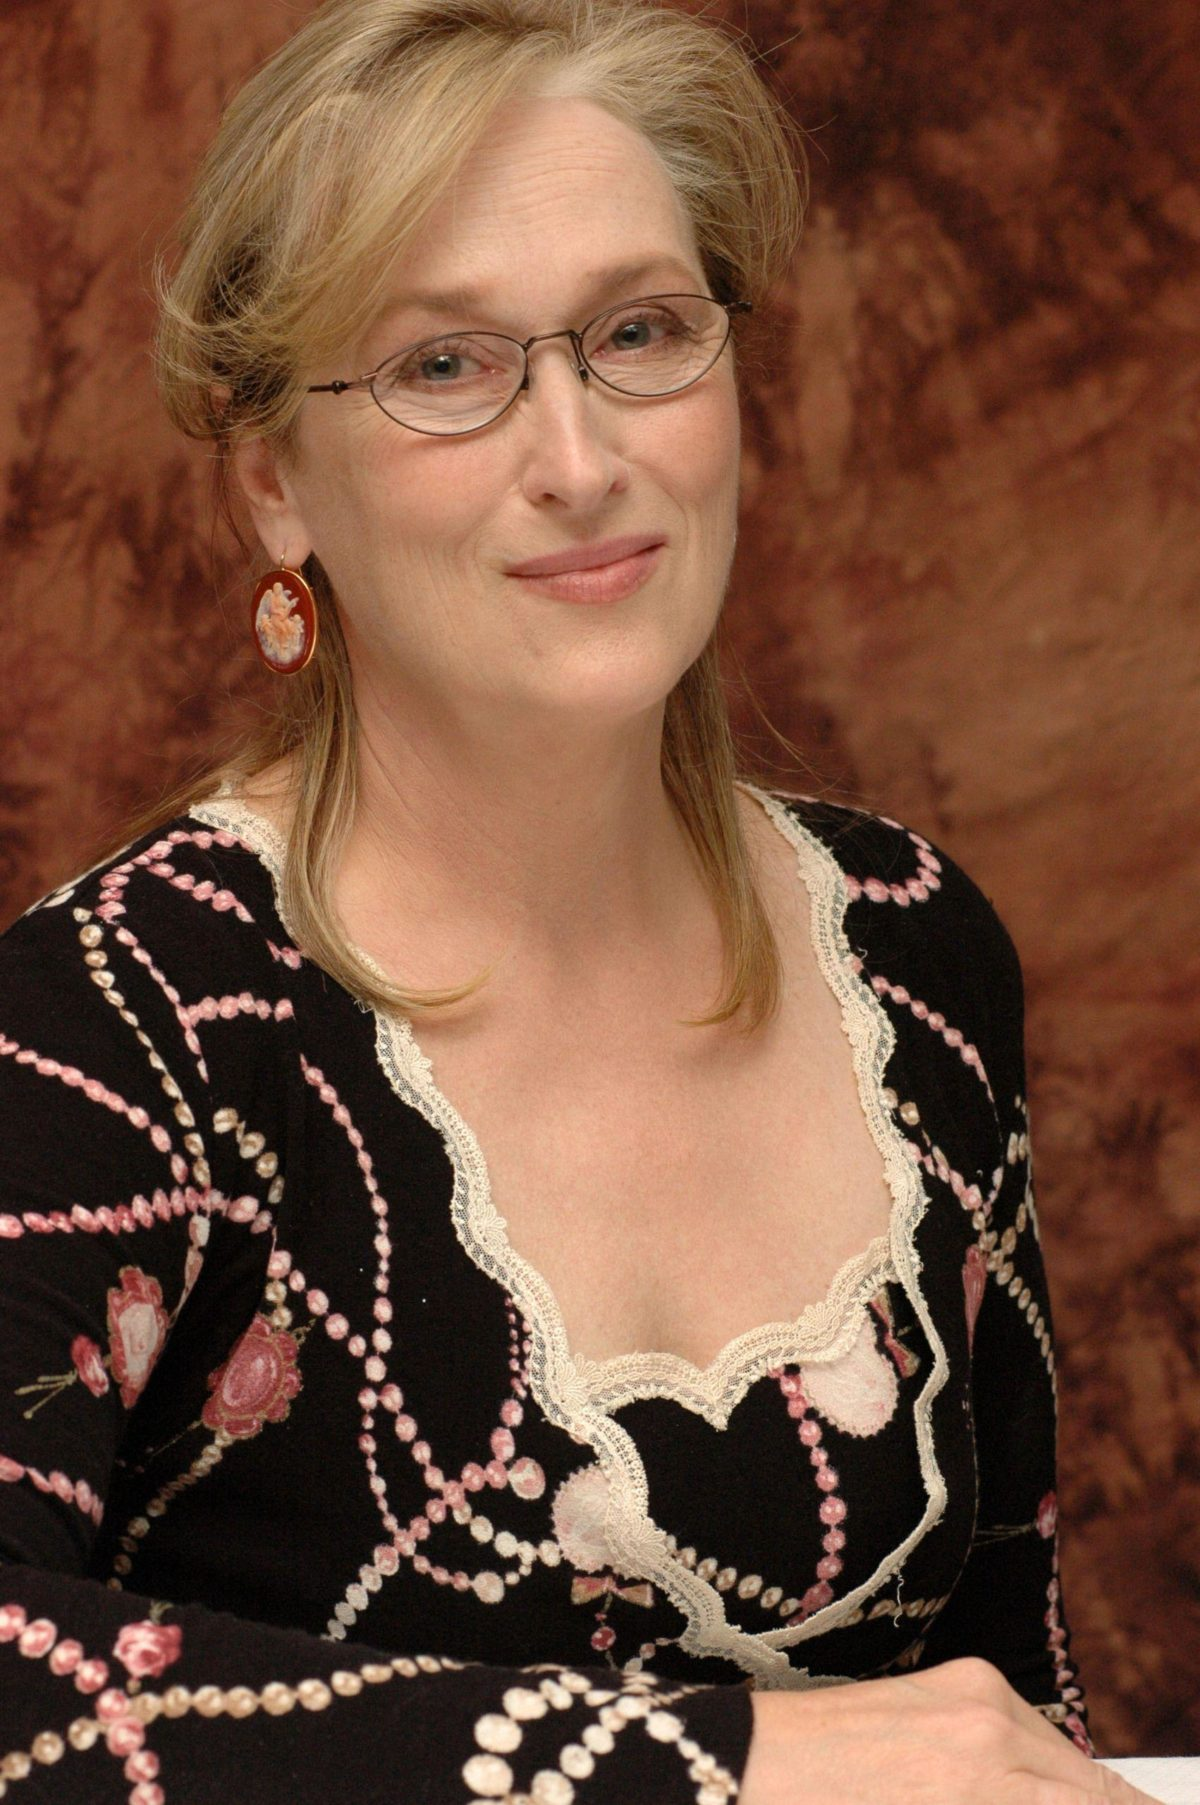 Wallpapers Wallbase Beauty: Meryl Streep – Images Hot